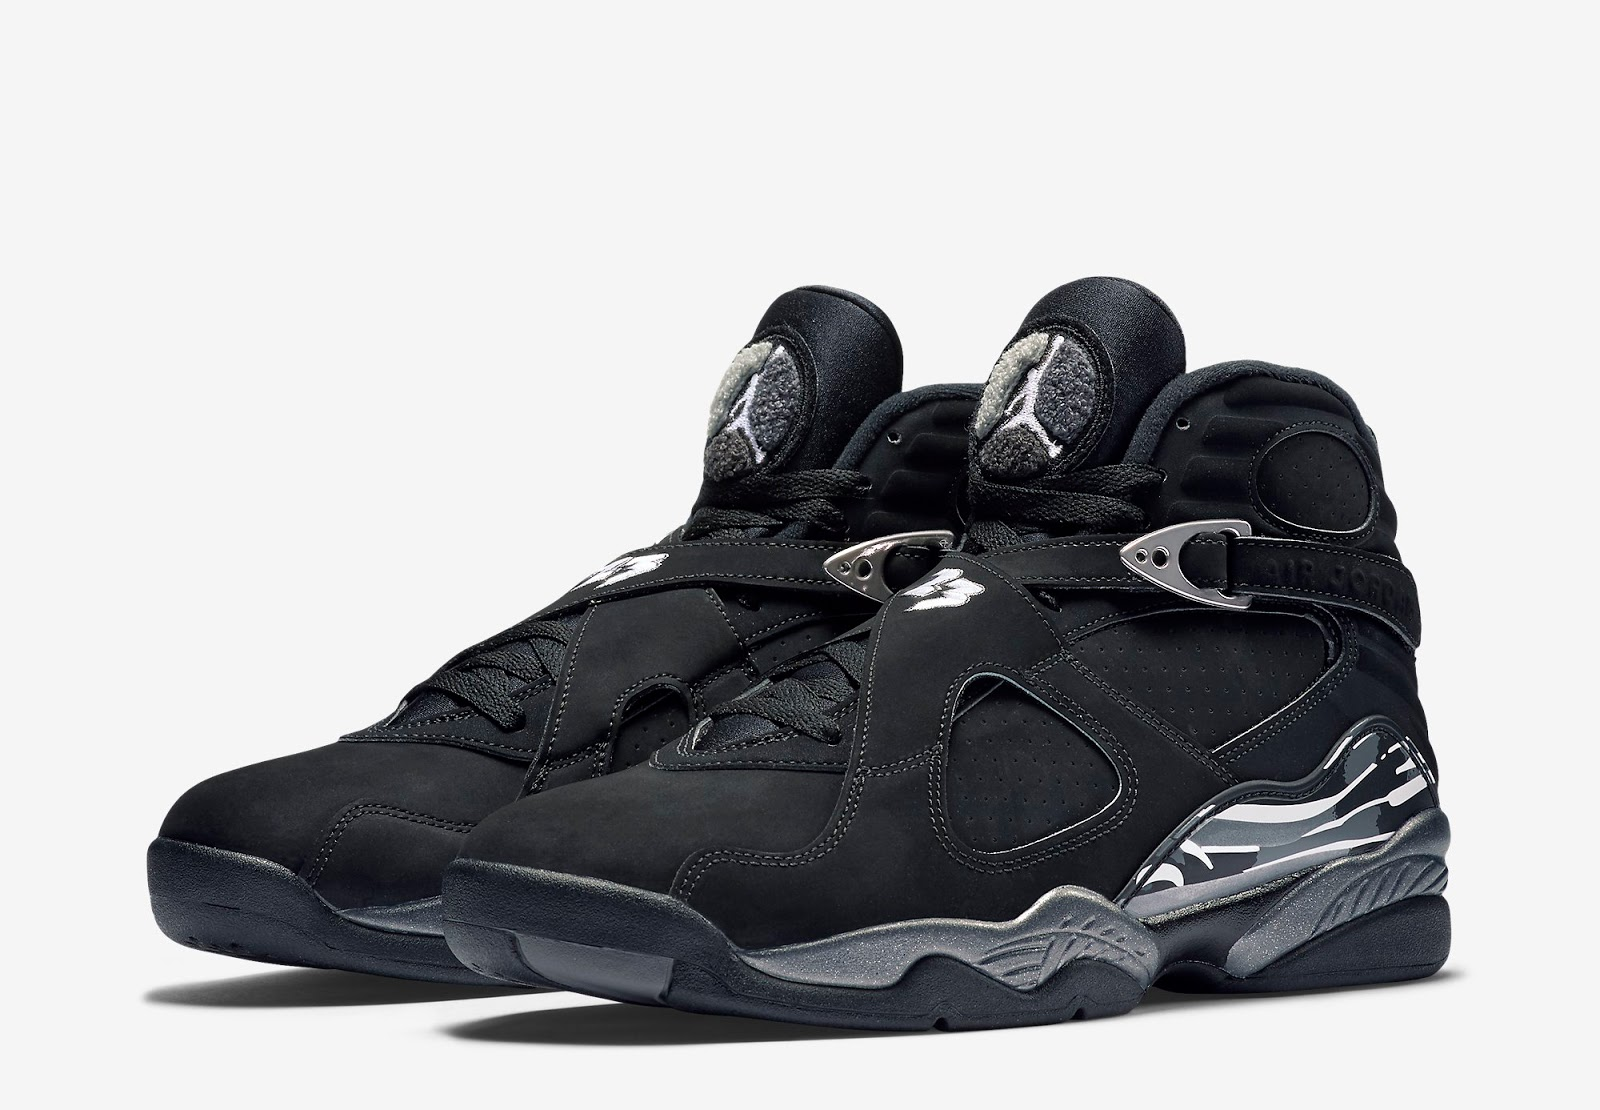 new arrival e2f97 e7790 Air Jordan 8 Retro